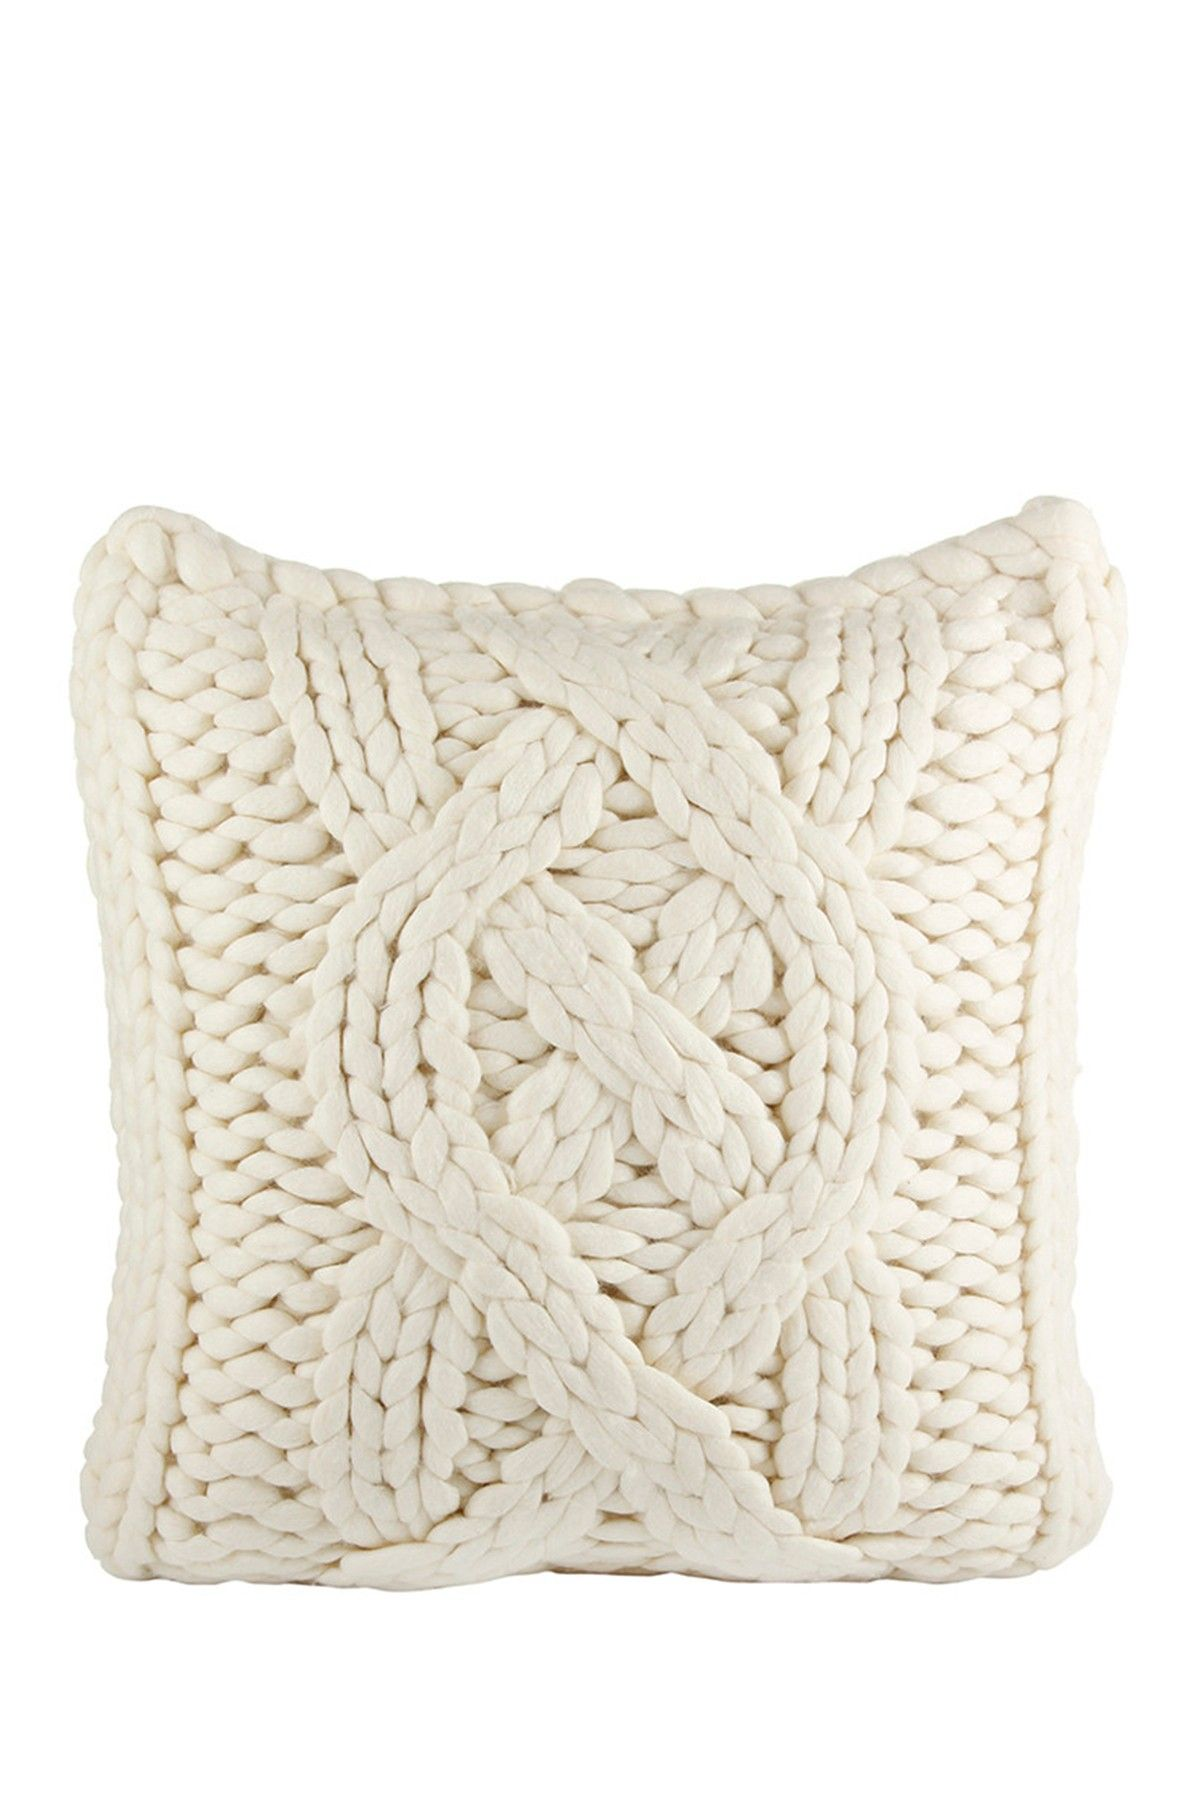 UGG Australia | Oversized Natural White Wool Blend Knit Pillow Cover ...